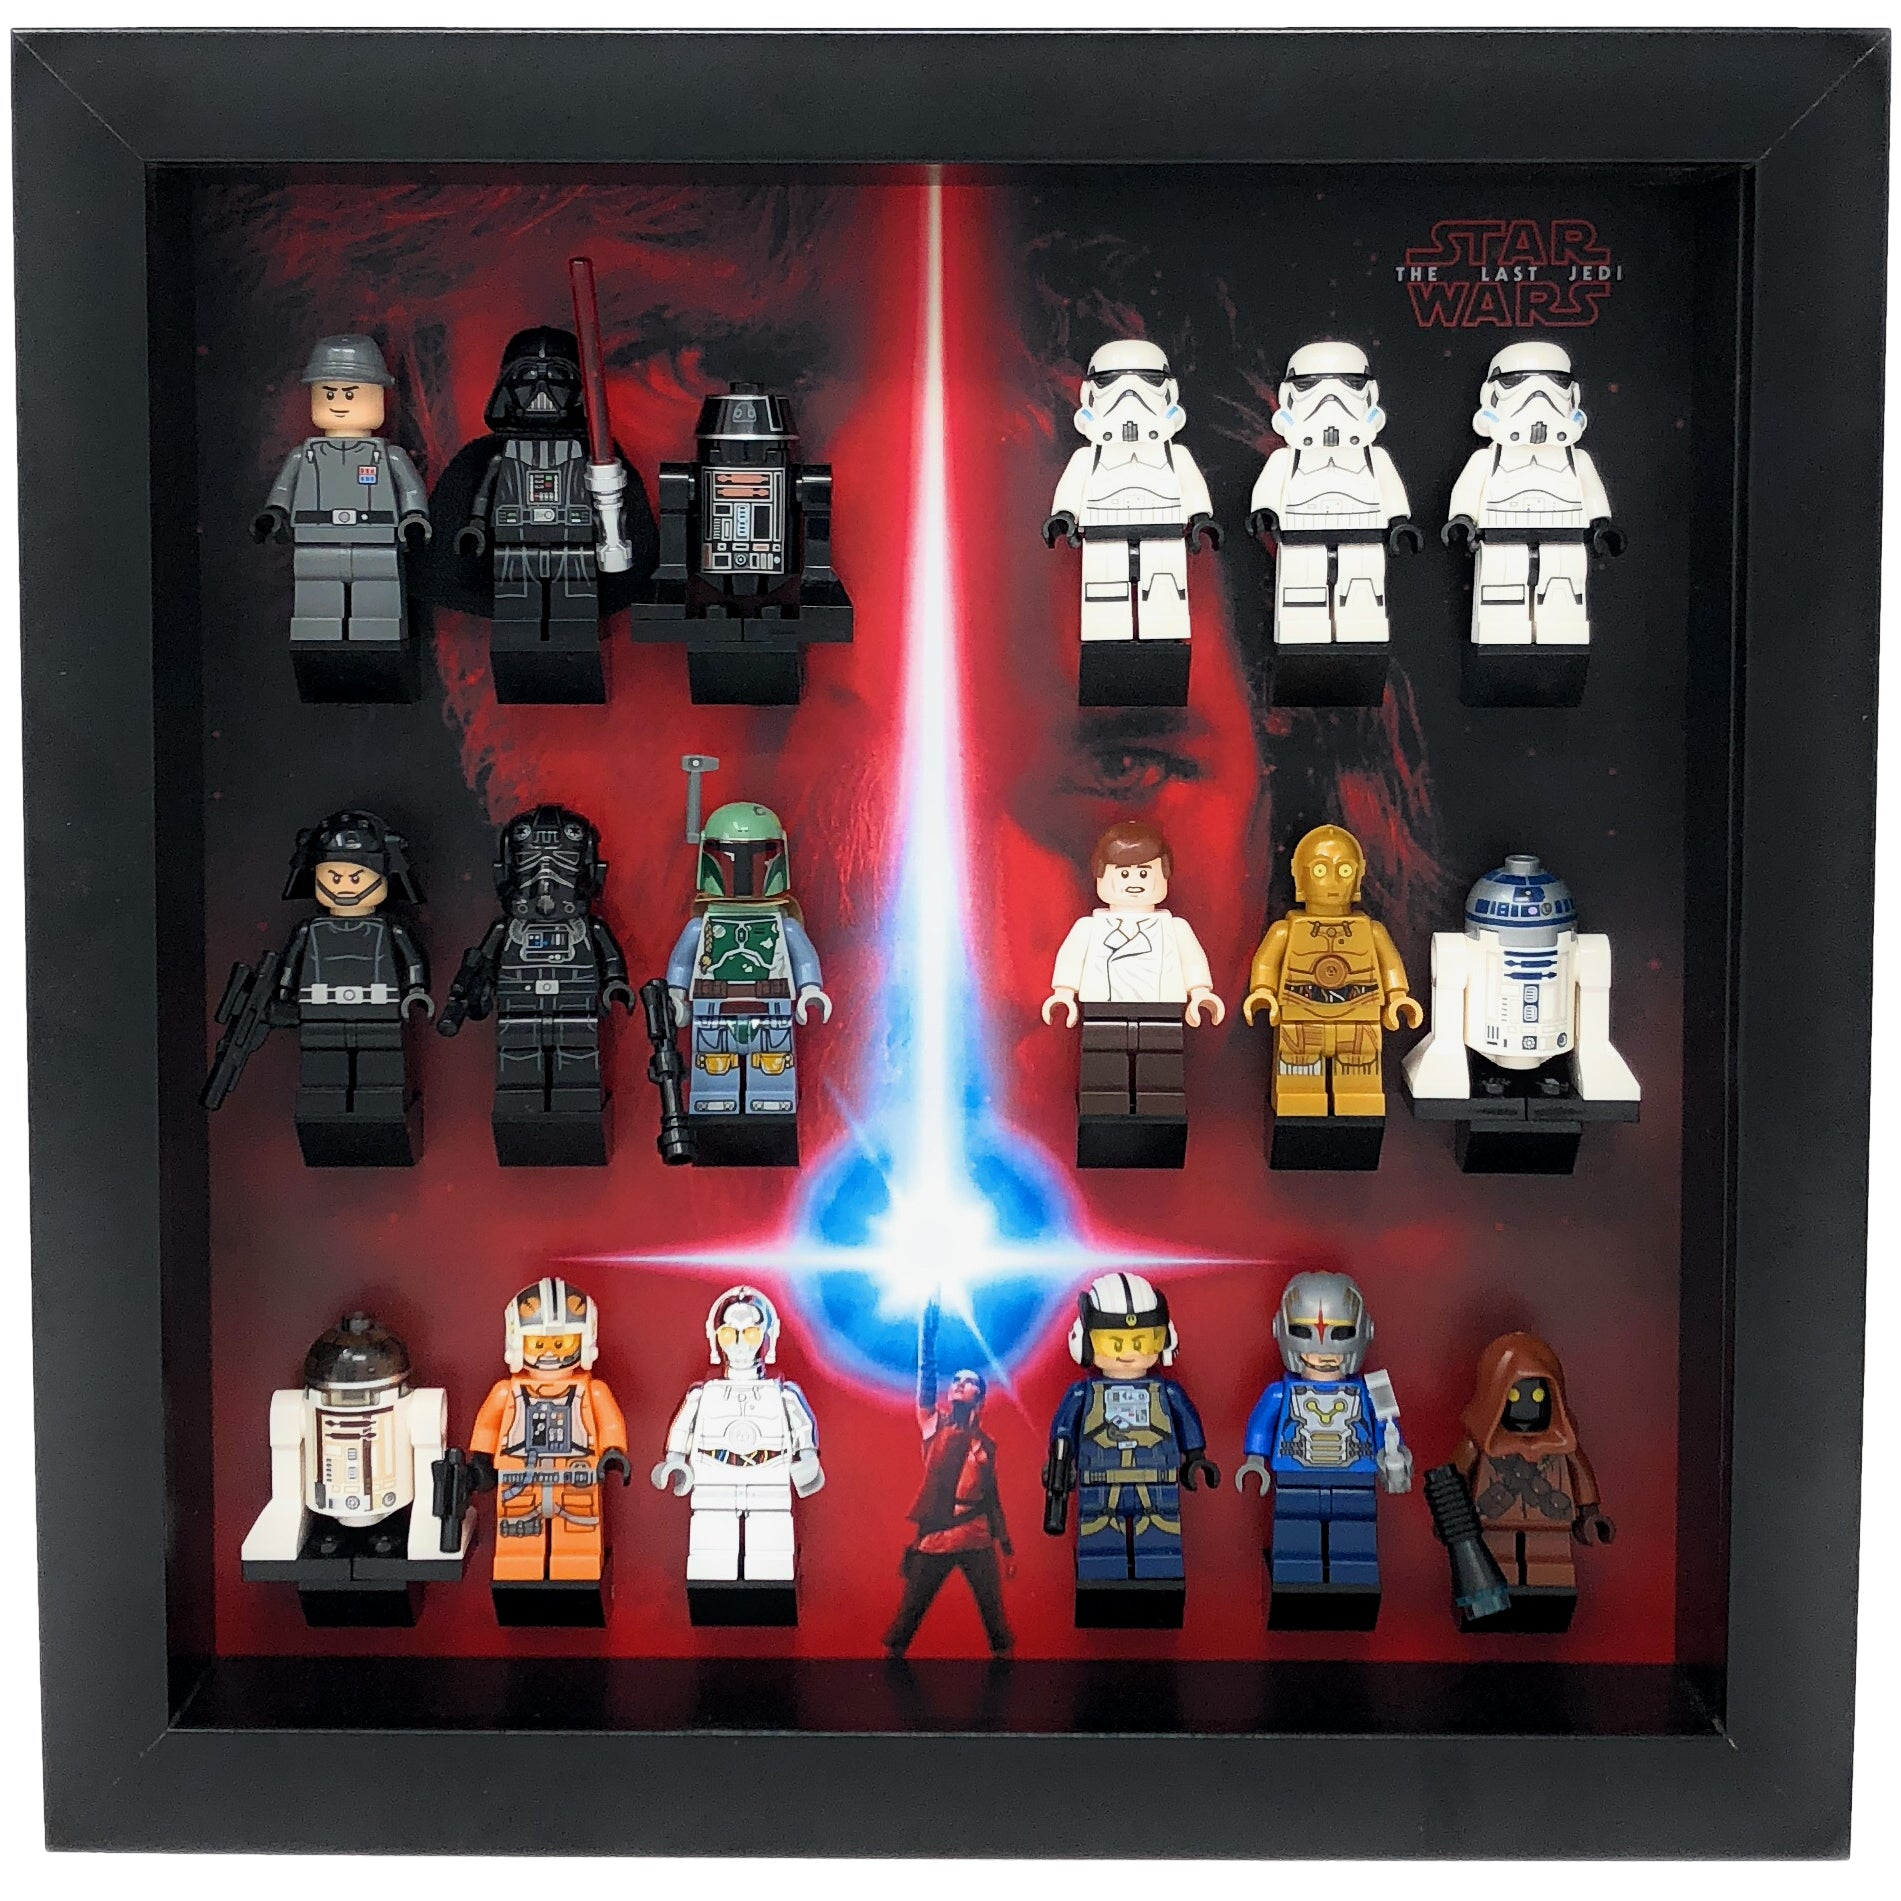 The Last Jedi Display Frame For Star Wars Minifigures